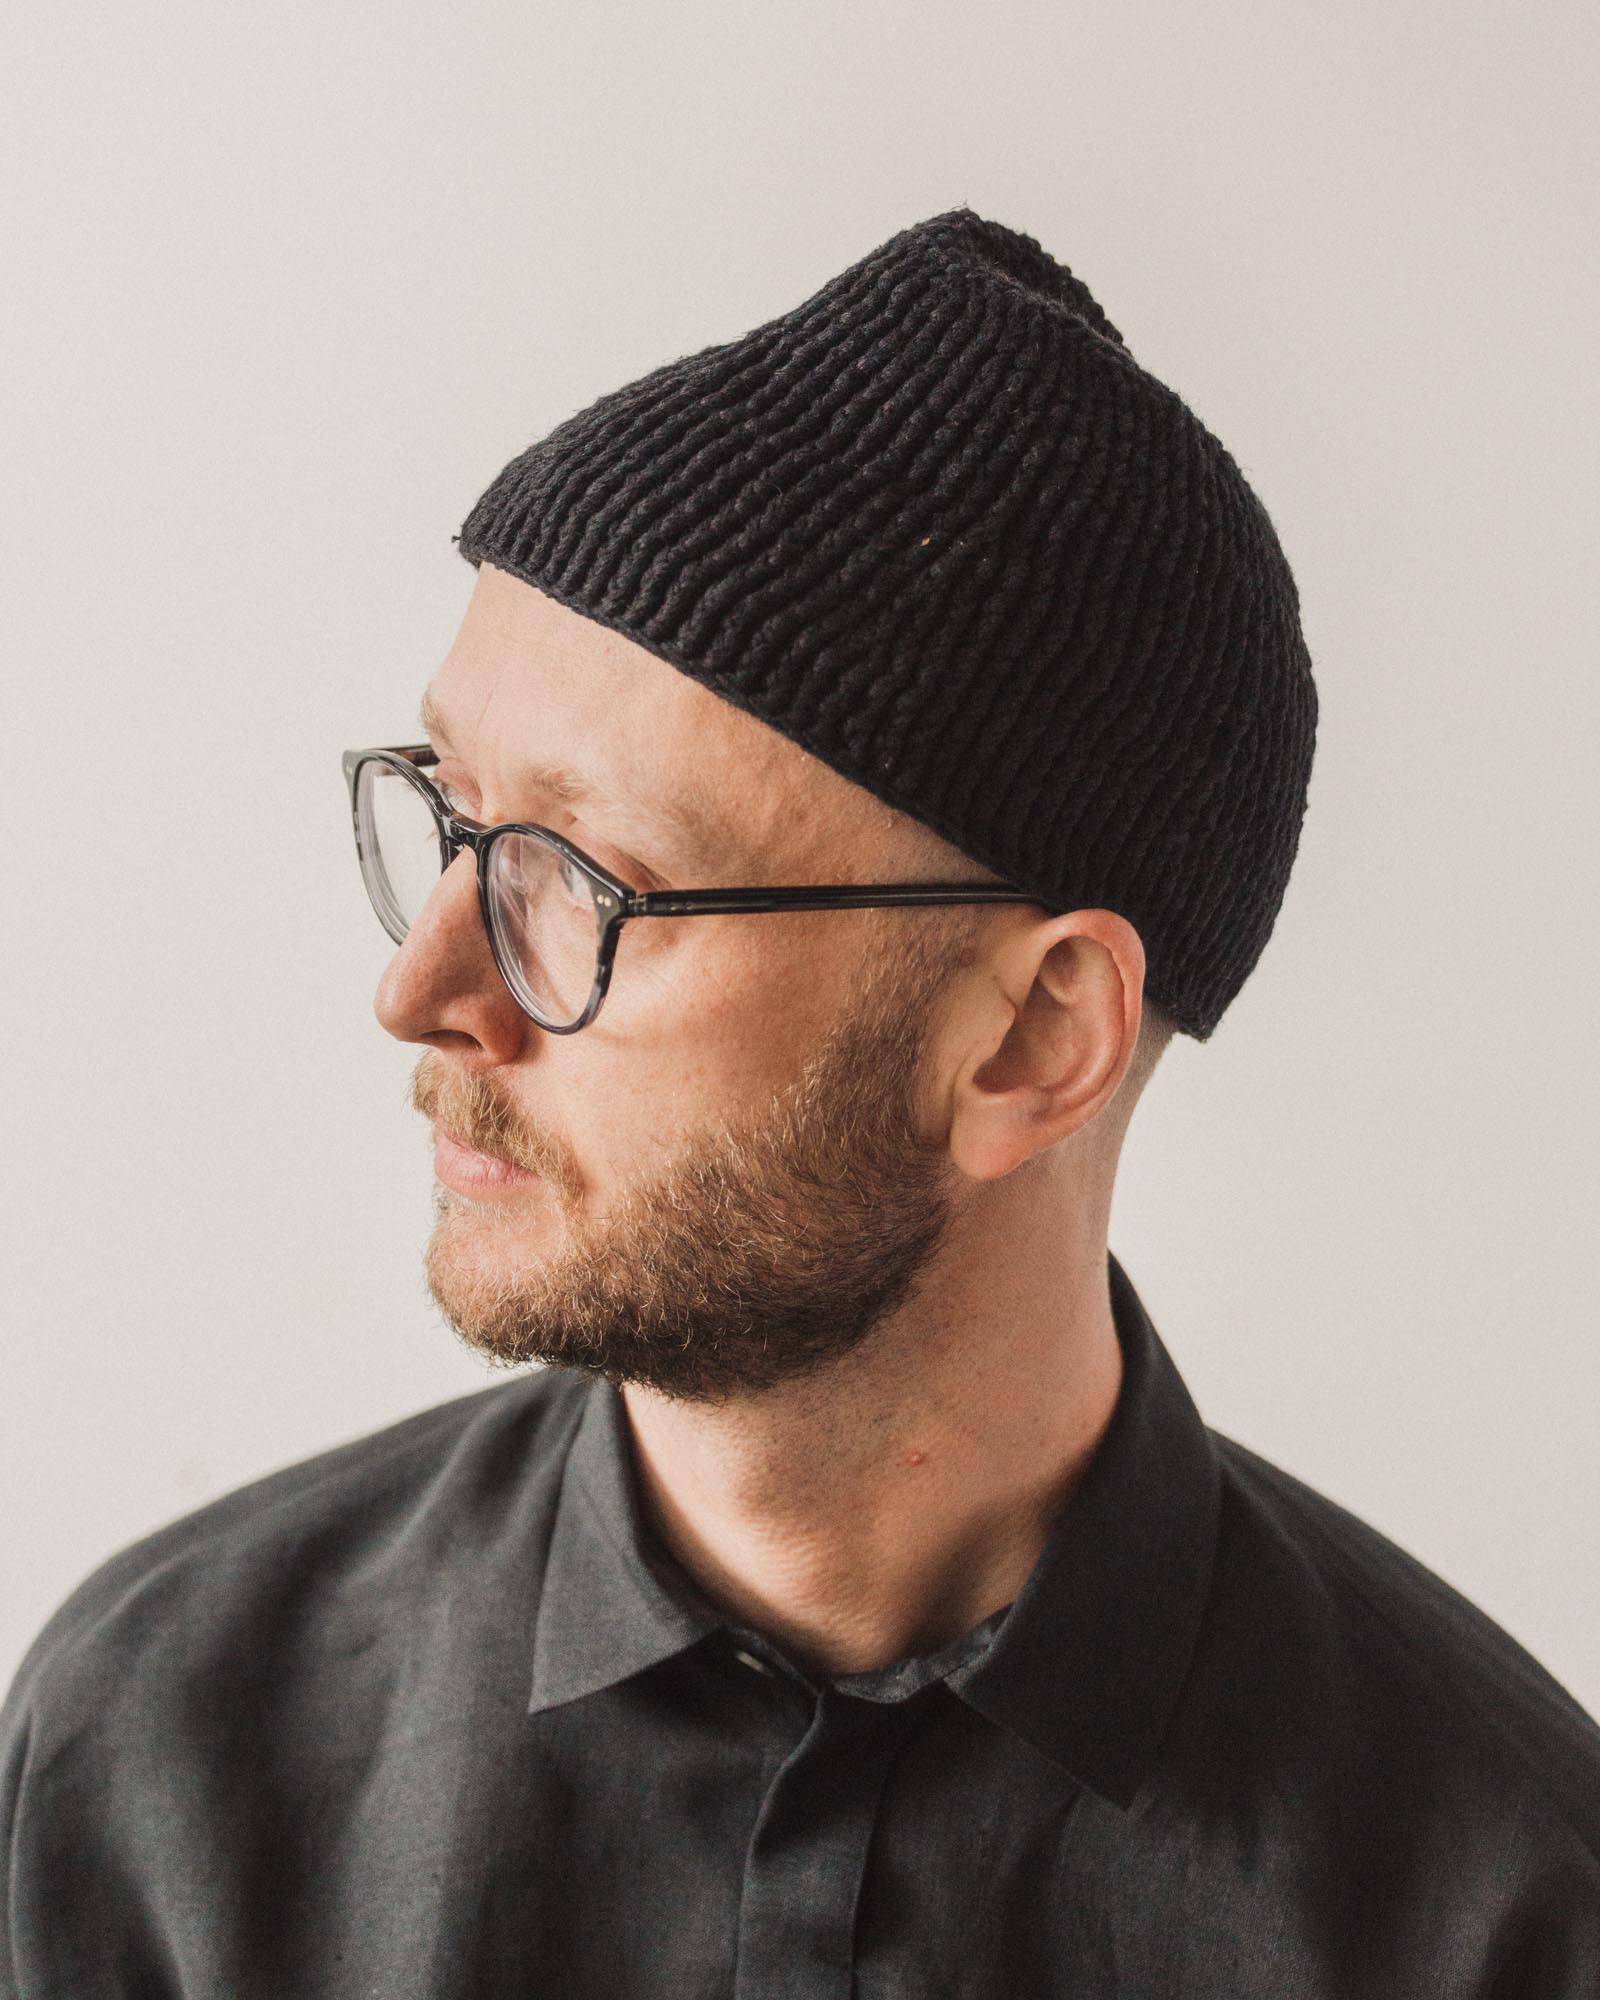 Jan-Jan Van Essche Hat #3, Black Linen